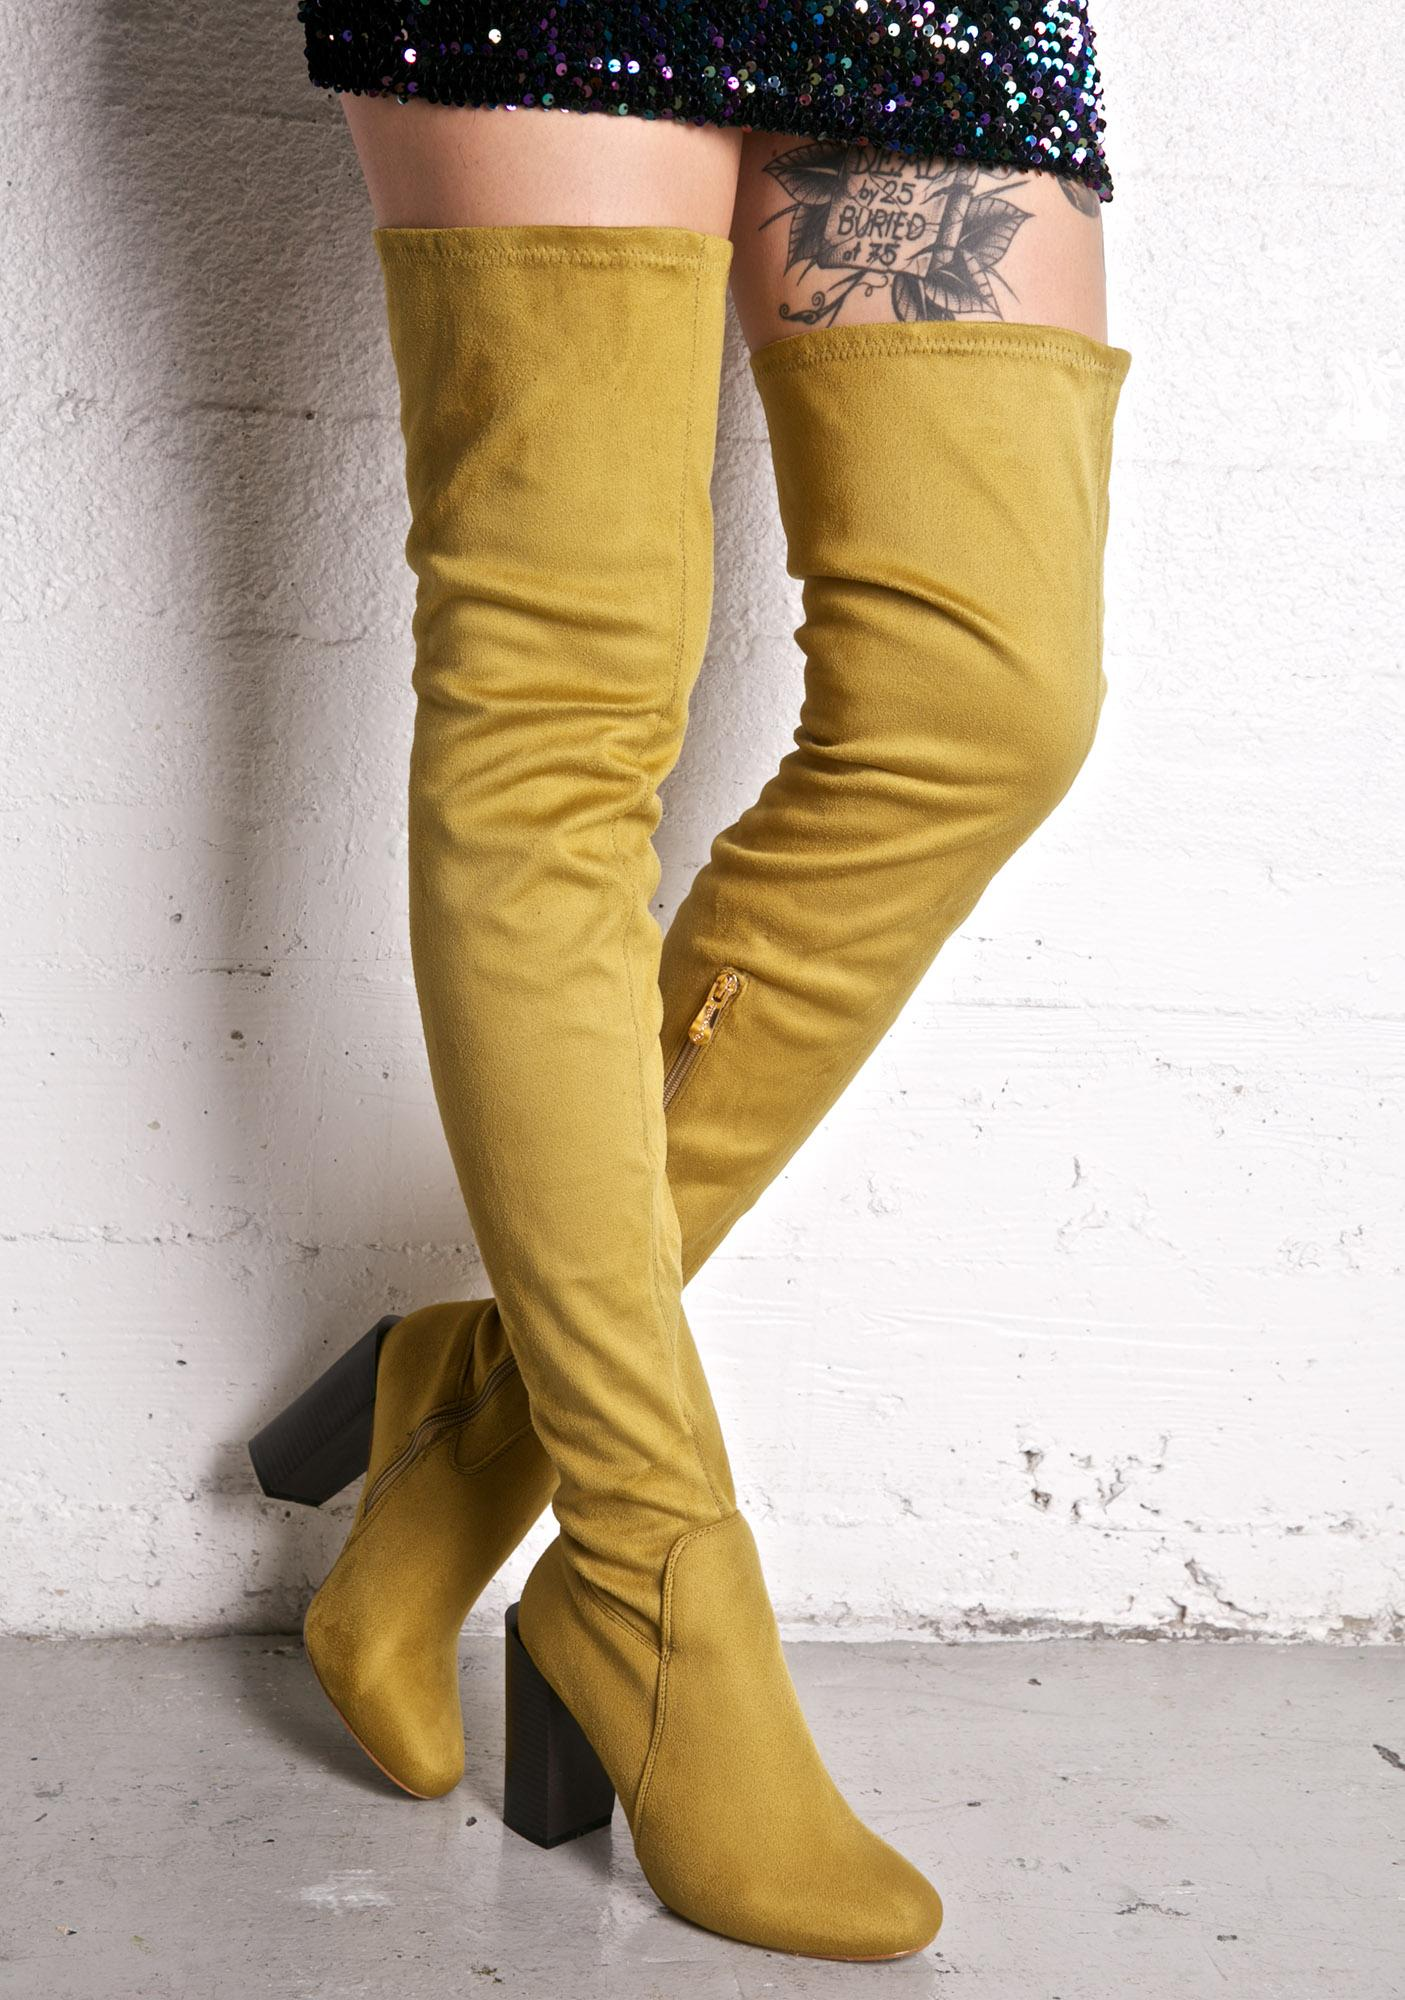 Sage Confessions Thigh-High Boots